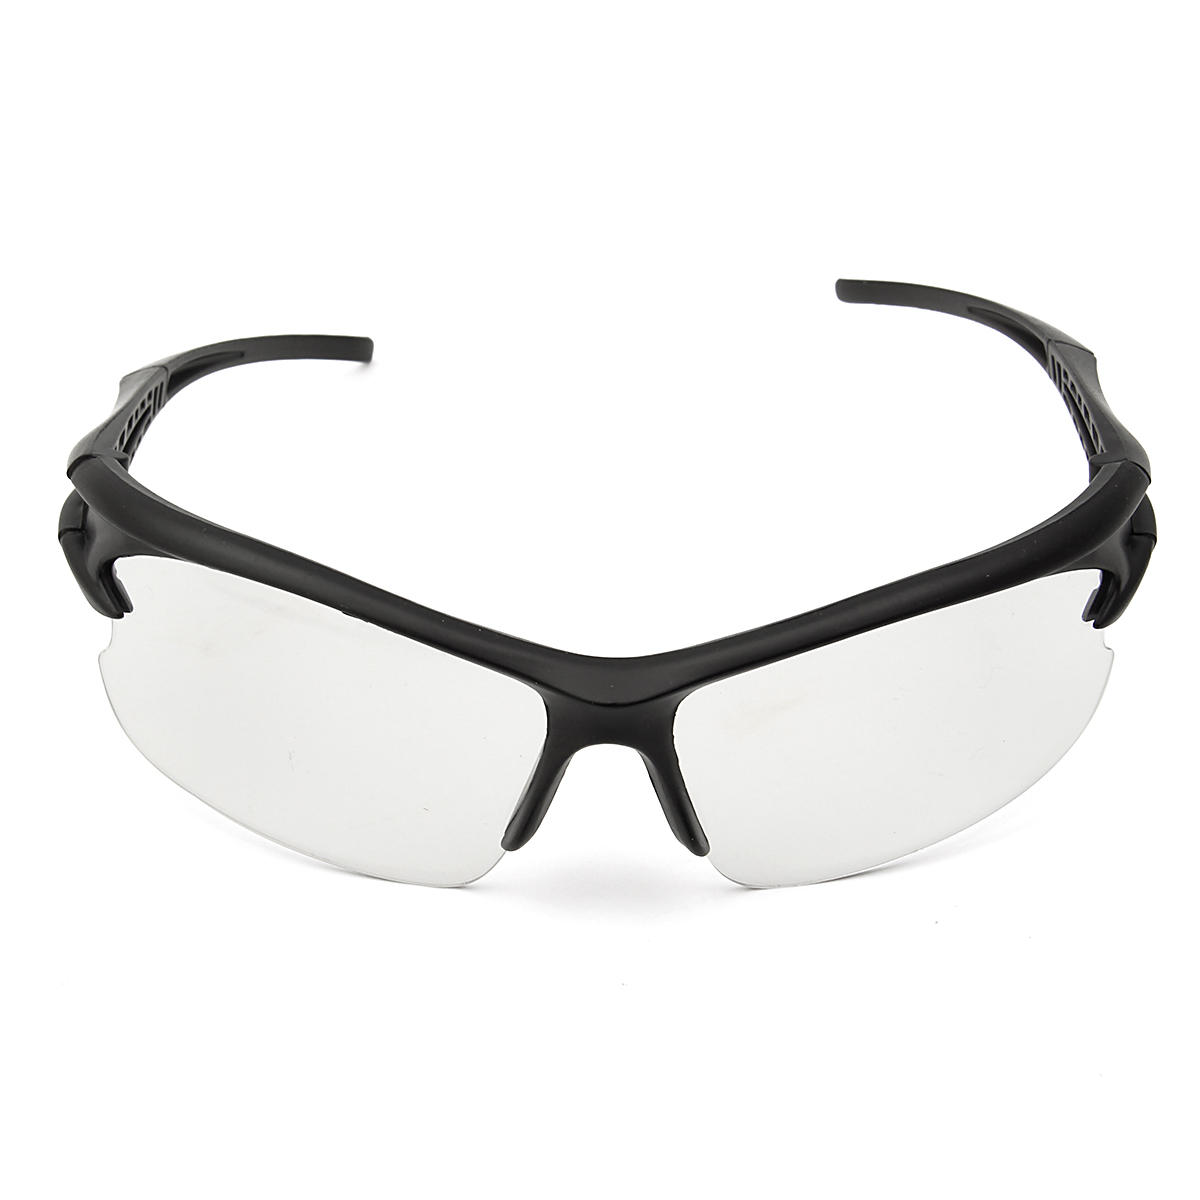 45ada8c715 Wind and Dust Protective Goggles Glasses Eyewear Eyes Protection Anti Fog  COD